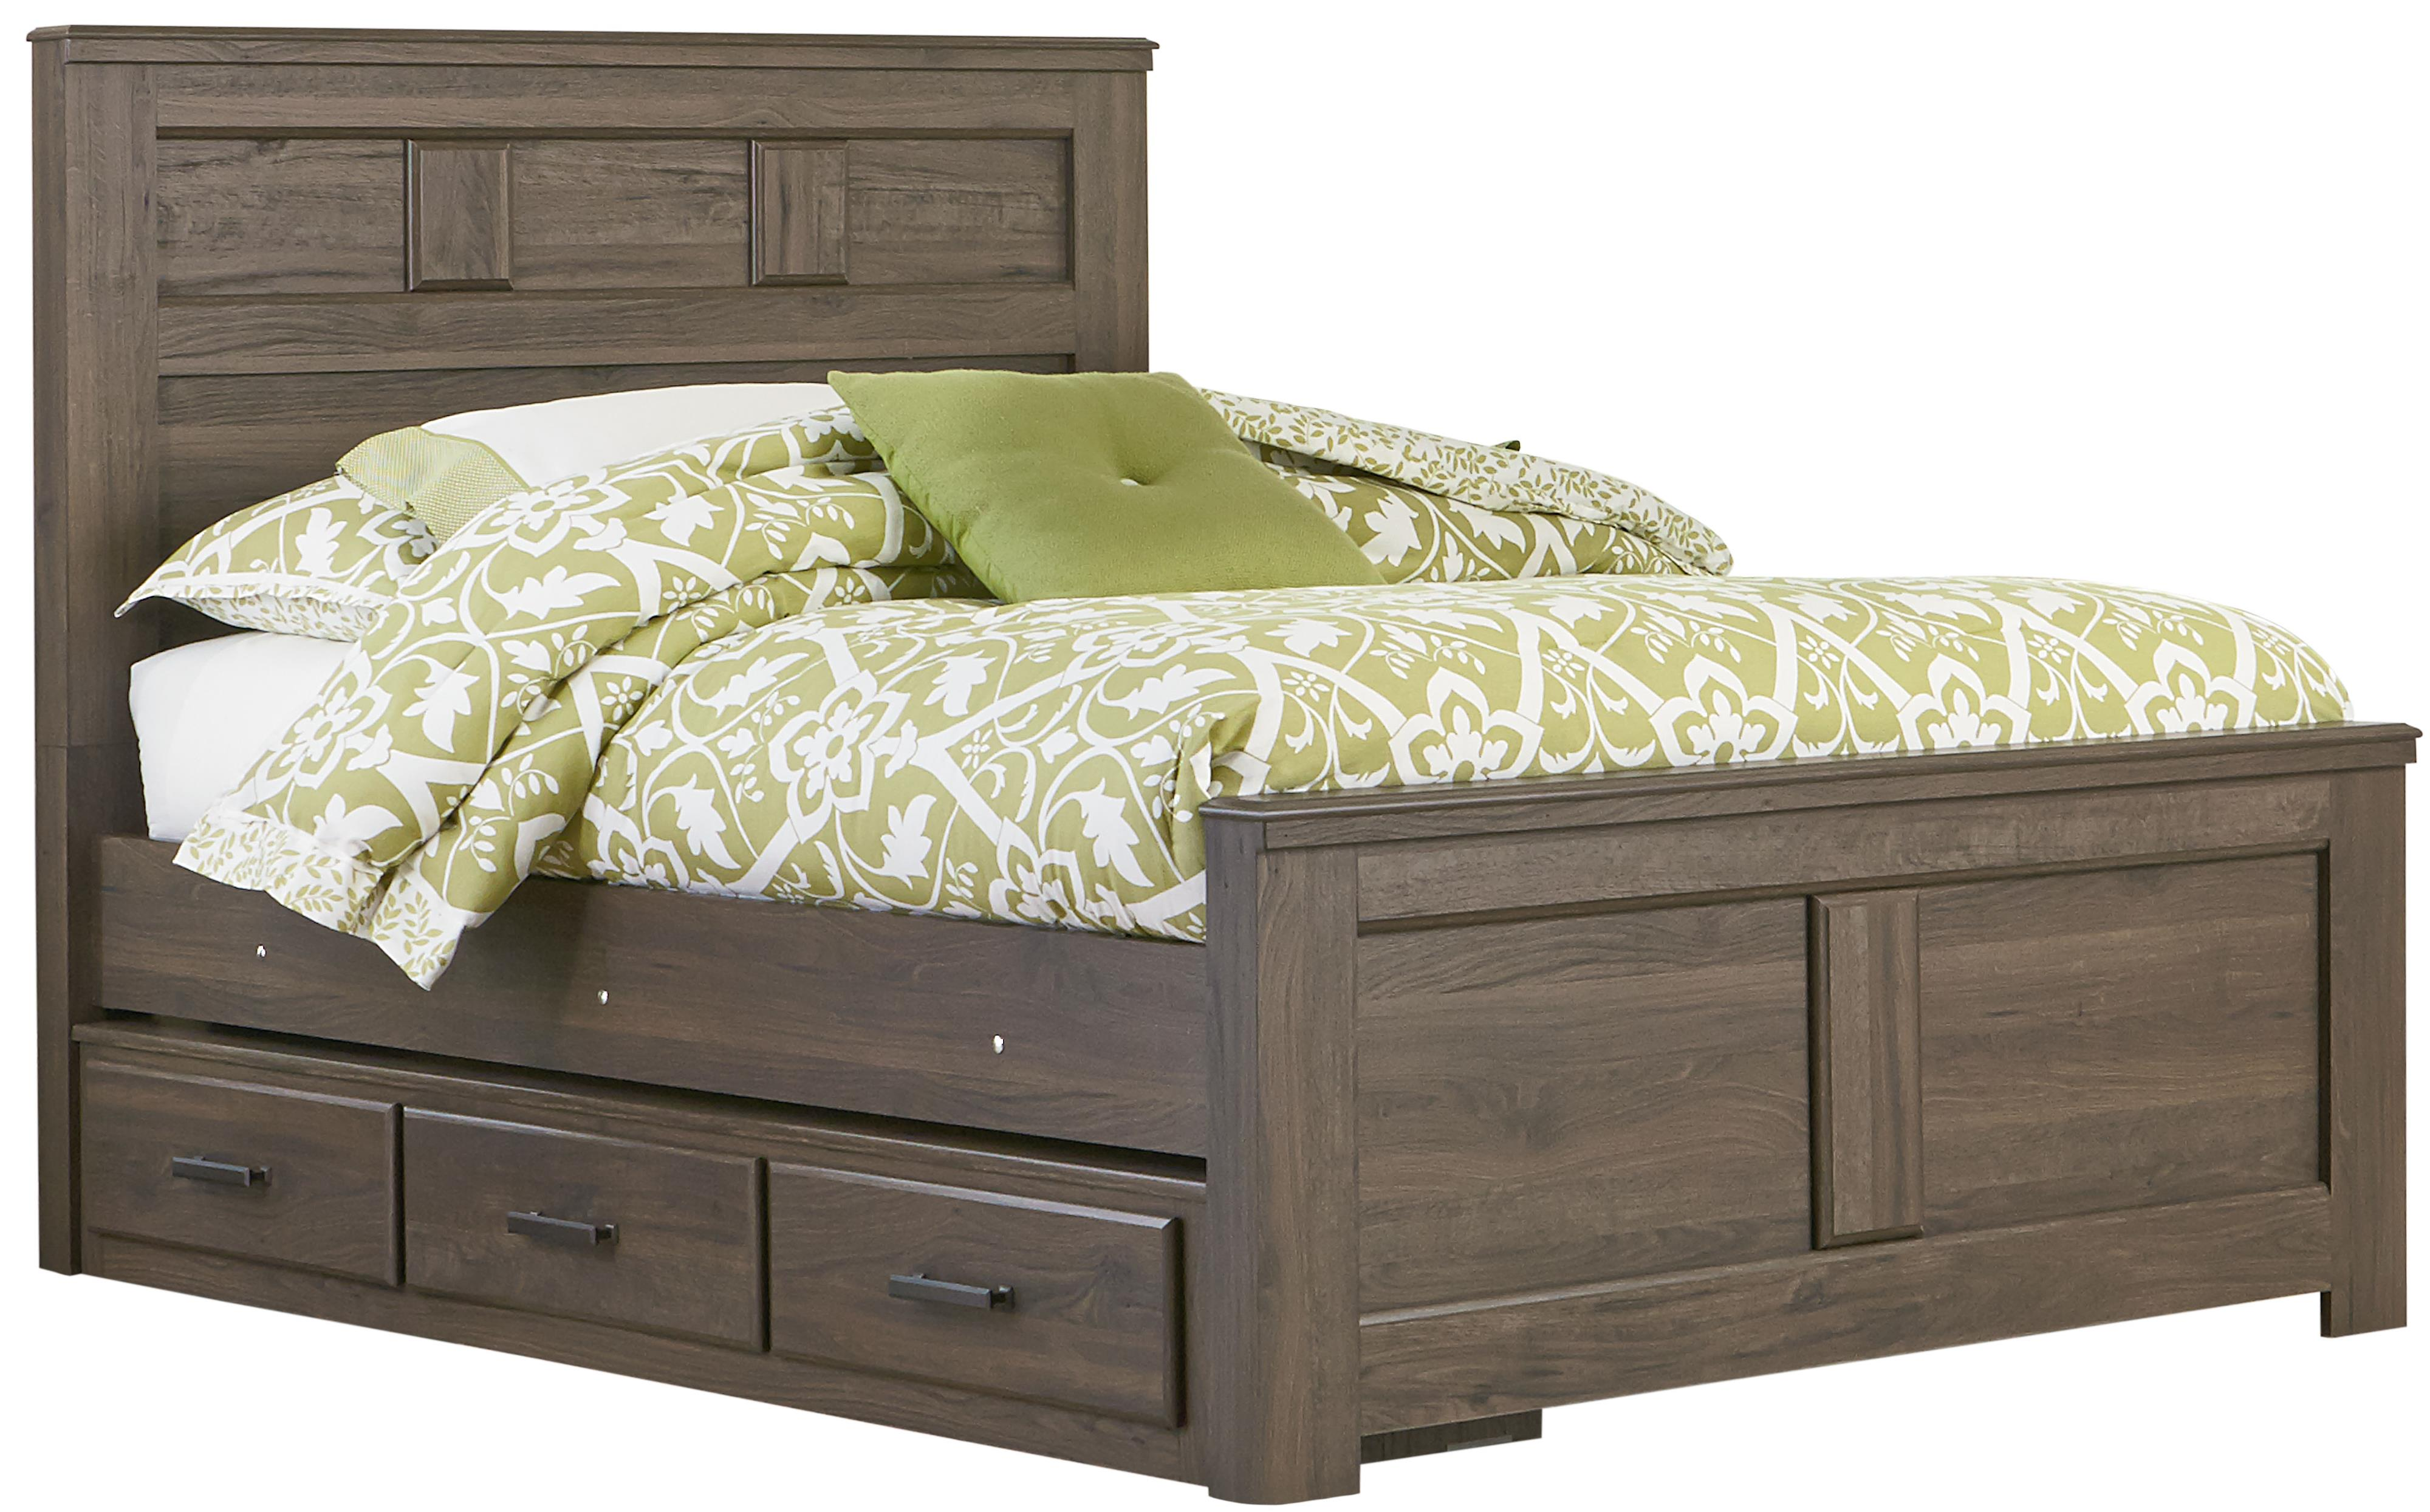 Standard Furniture Hayward Twin Panel Bed - Item Number: 56503+13+10+23